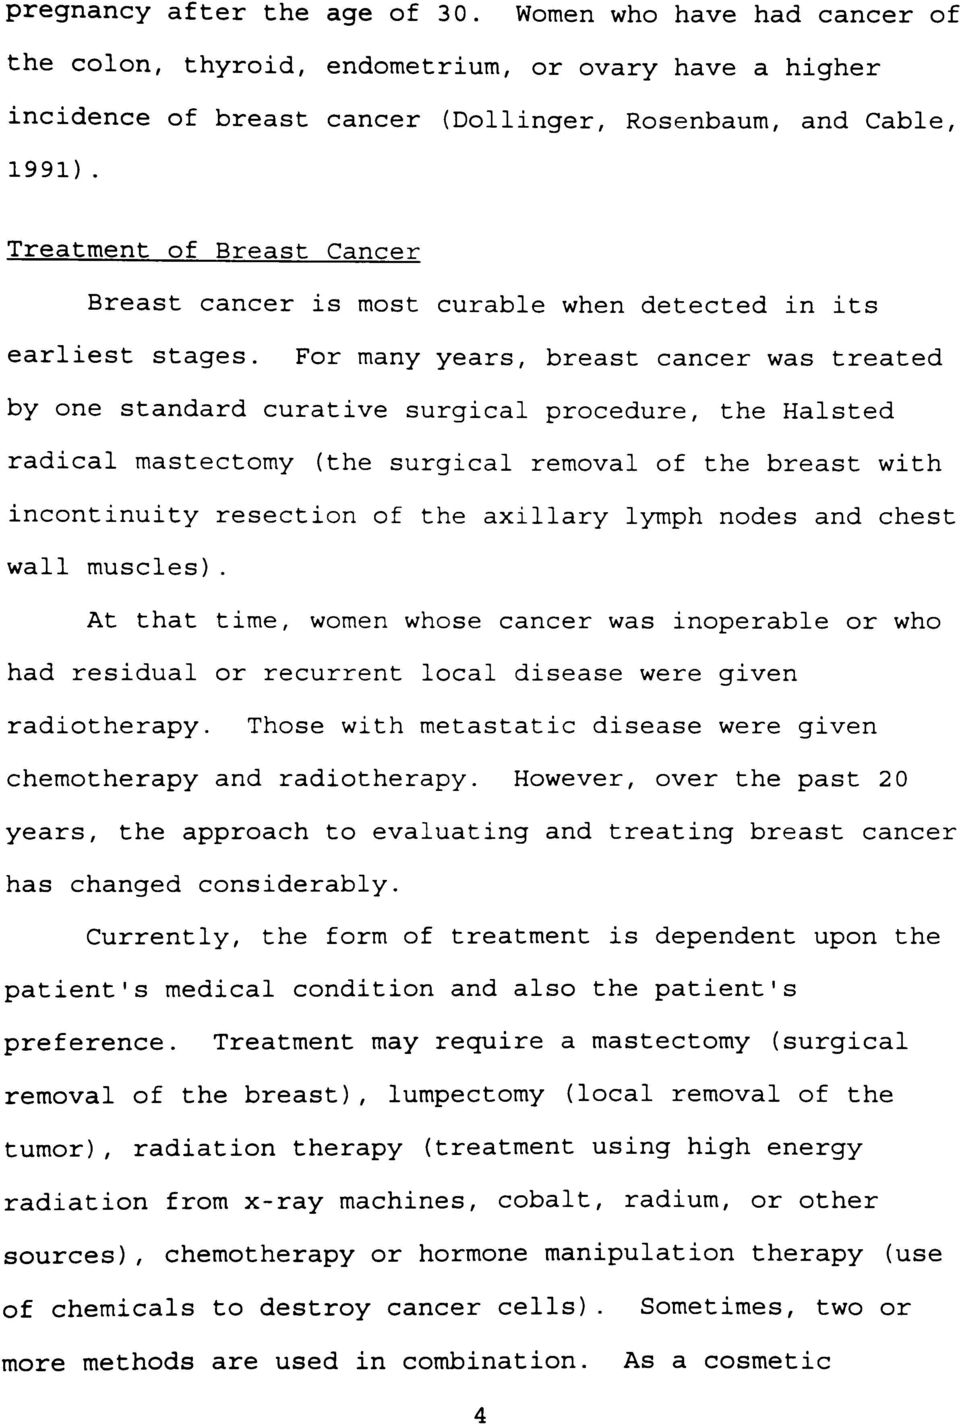 For many years, breast cancer was treated by one standard curative surgical procedure, the Halsted radical mastectomy (the surgical removal of the breast with incontinuity resection of the axillary